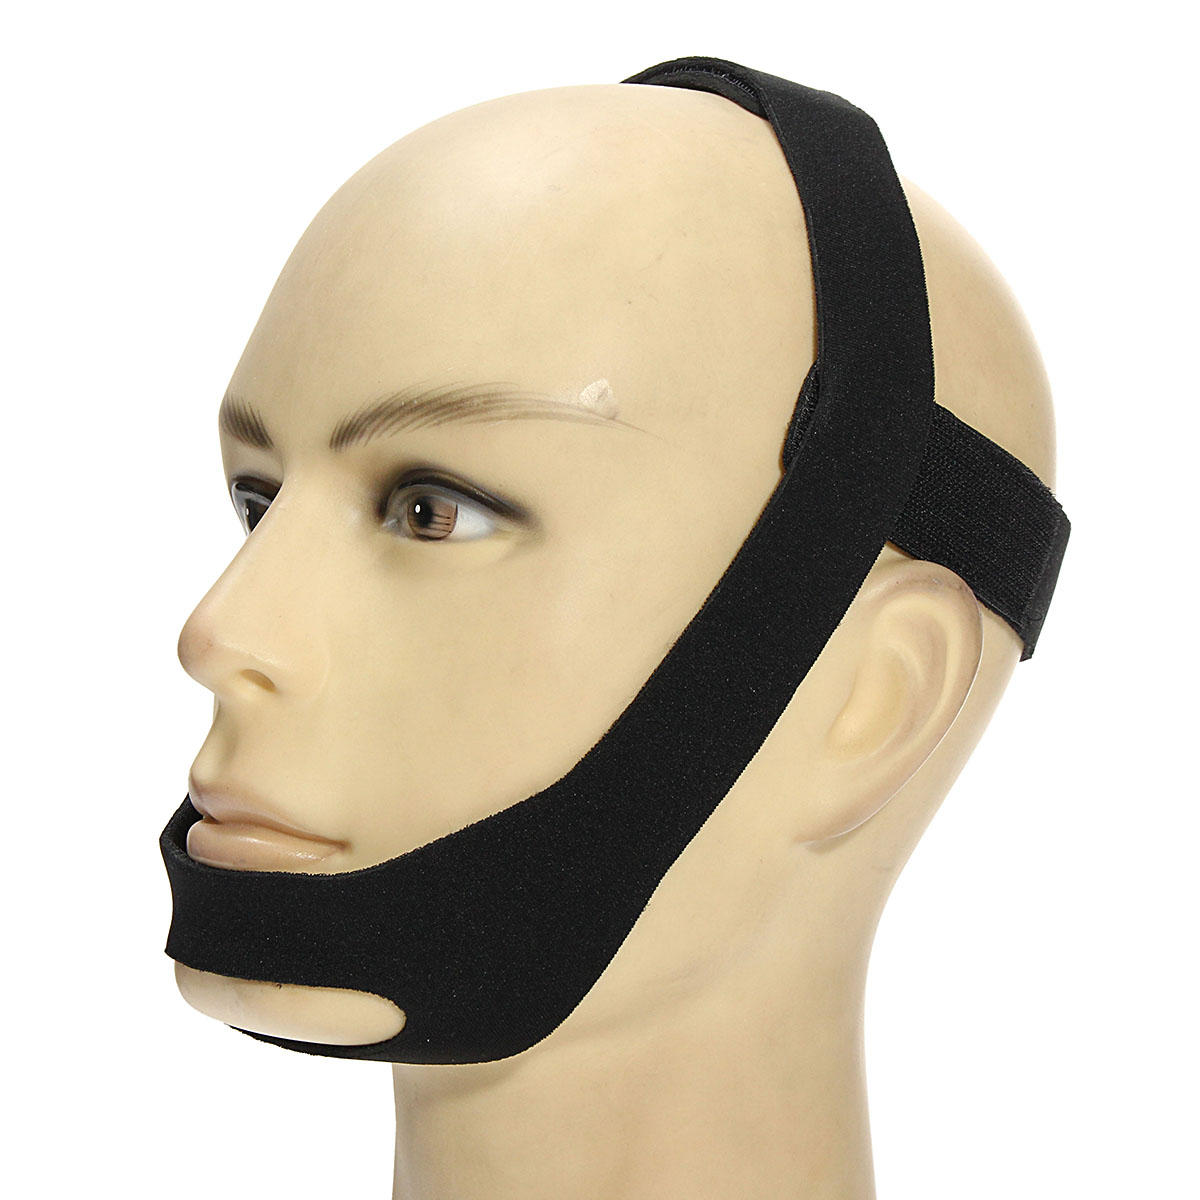 Anti Snoring Chin Straps Mouth Guard Elastic Stop Bruxism Nose Snoring Solutions Breathing Snore Stopper for Sleeping